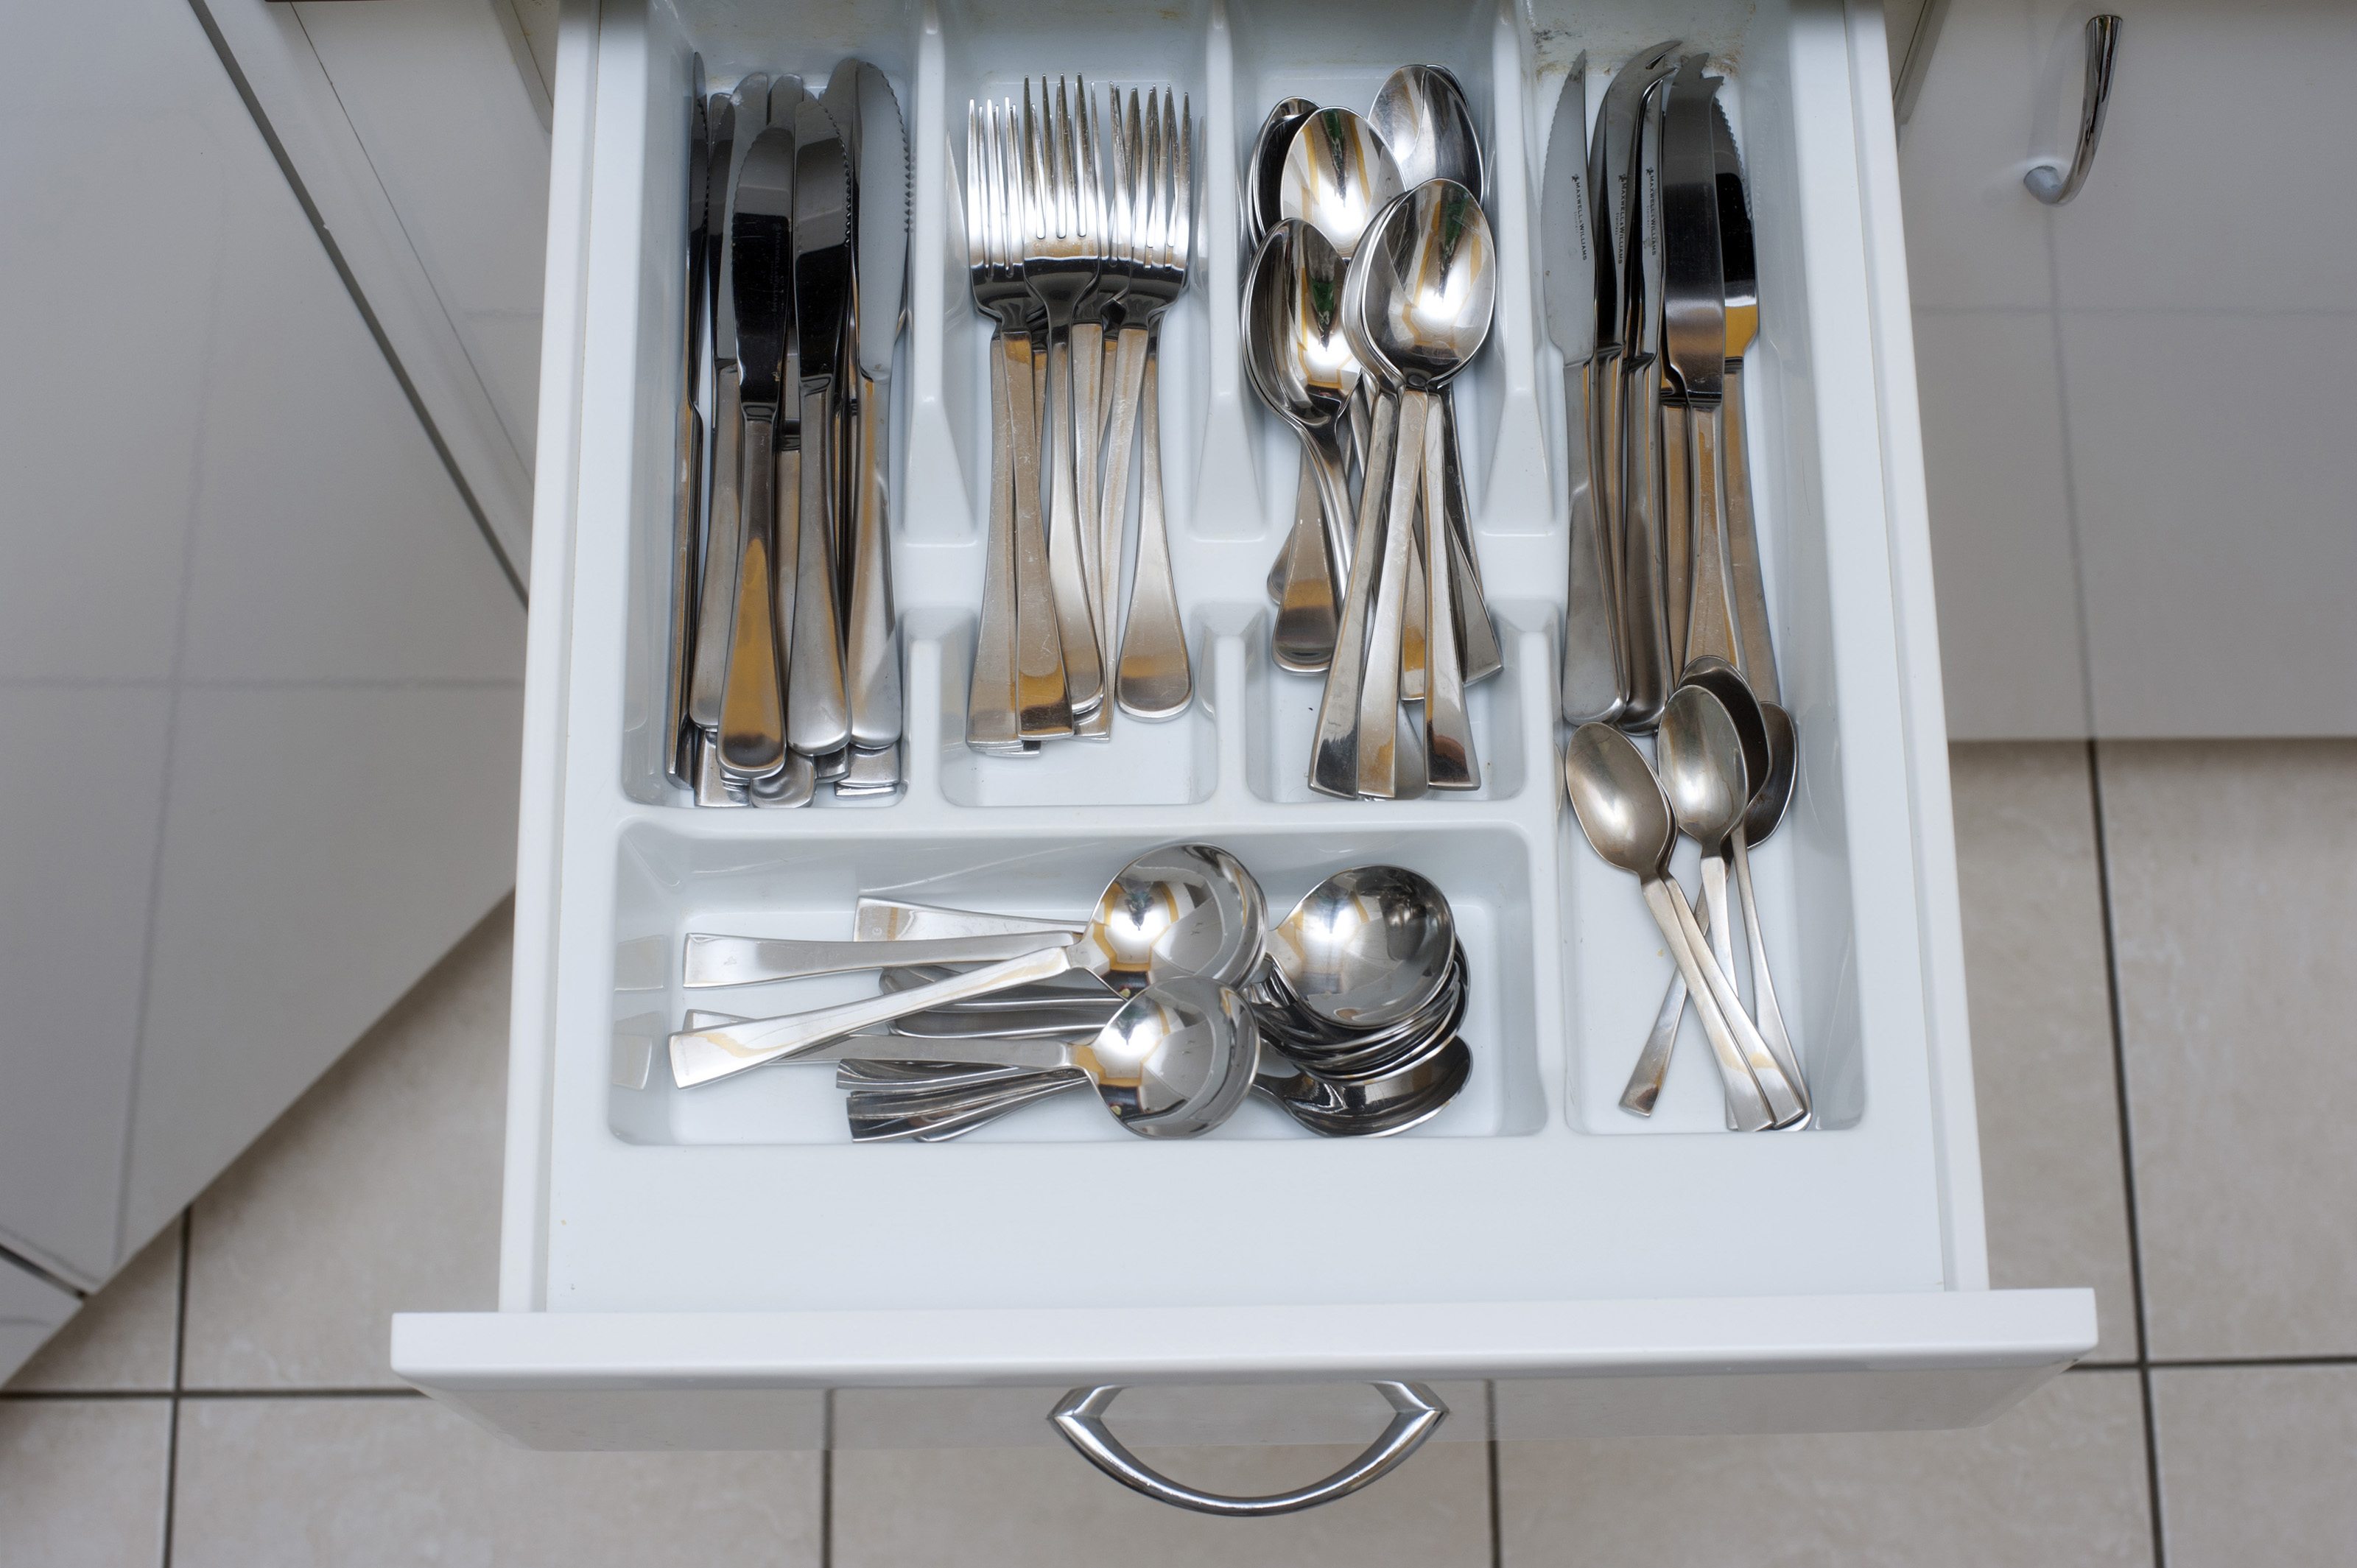 Kitchen Drawers Free Stock Photo 8142 Cutlery In An Open Kitchen Drawer